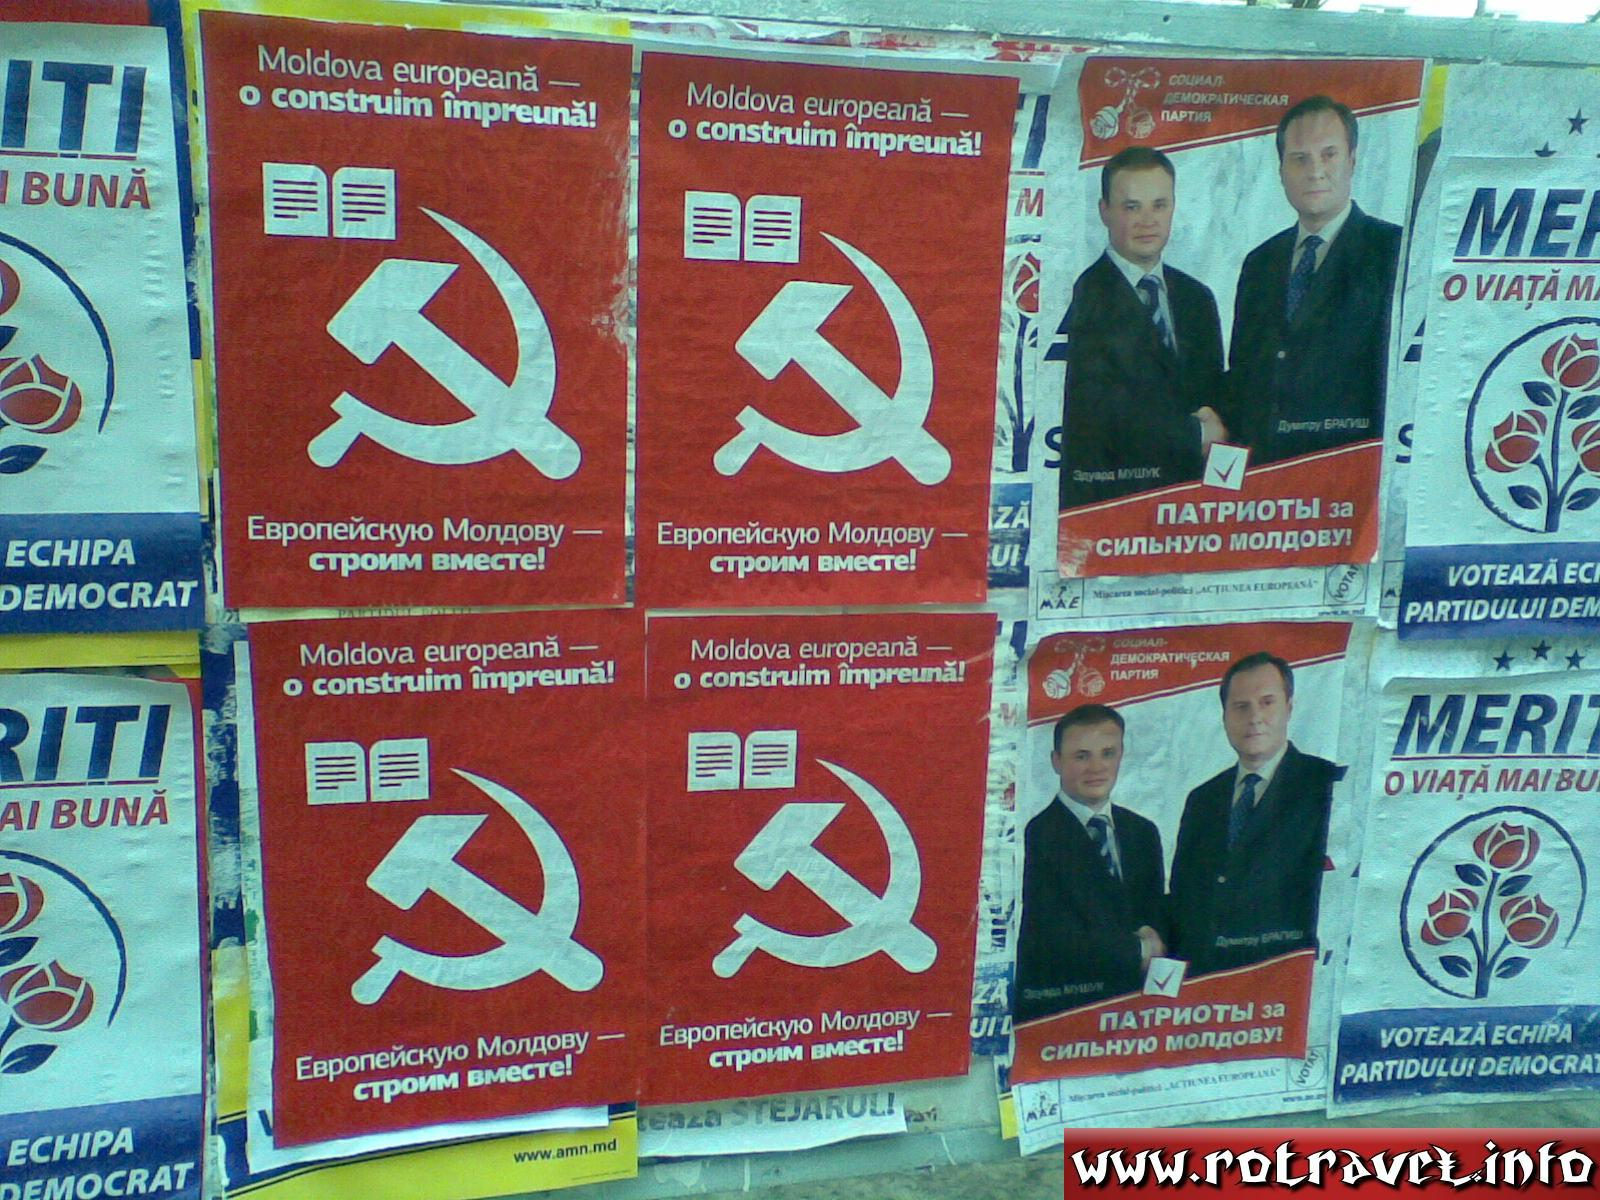 A poster of the Communist Party of Moldova